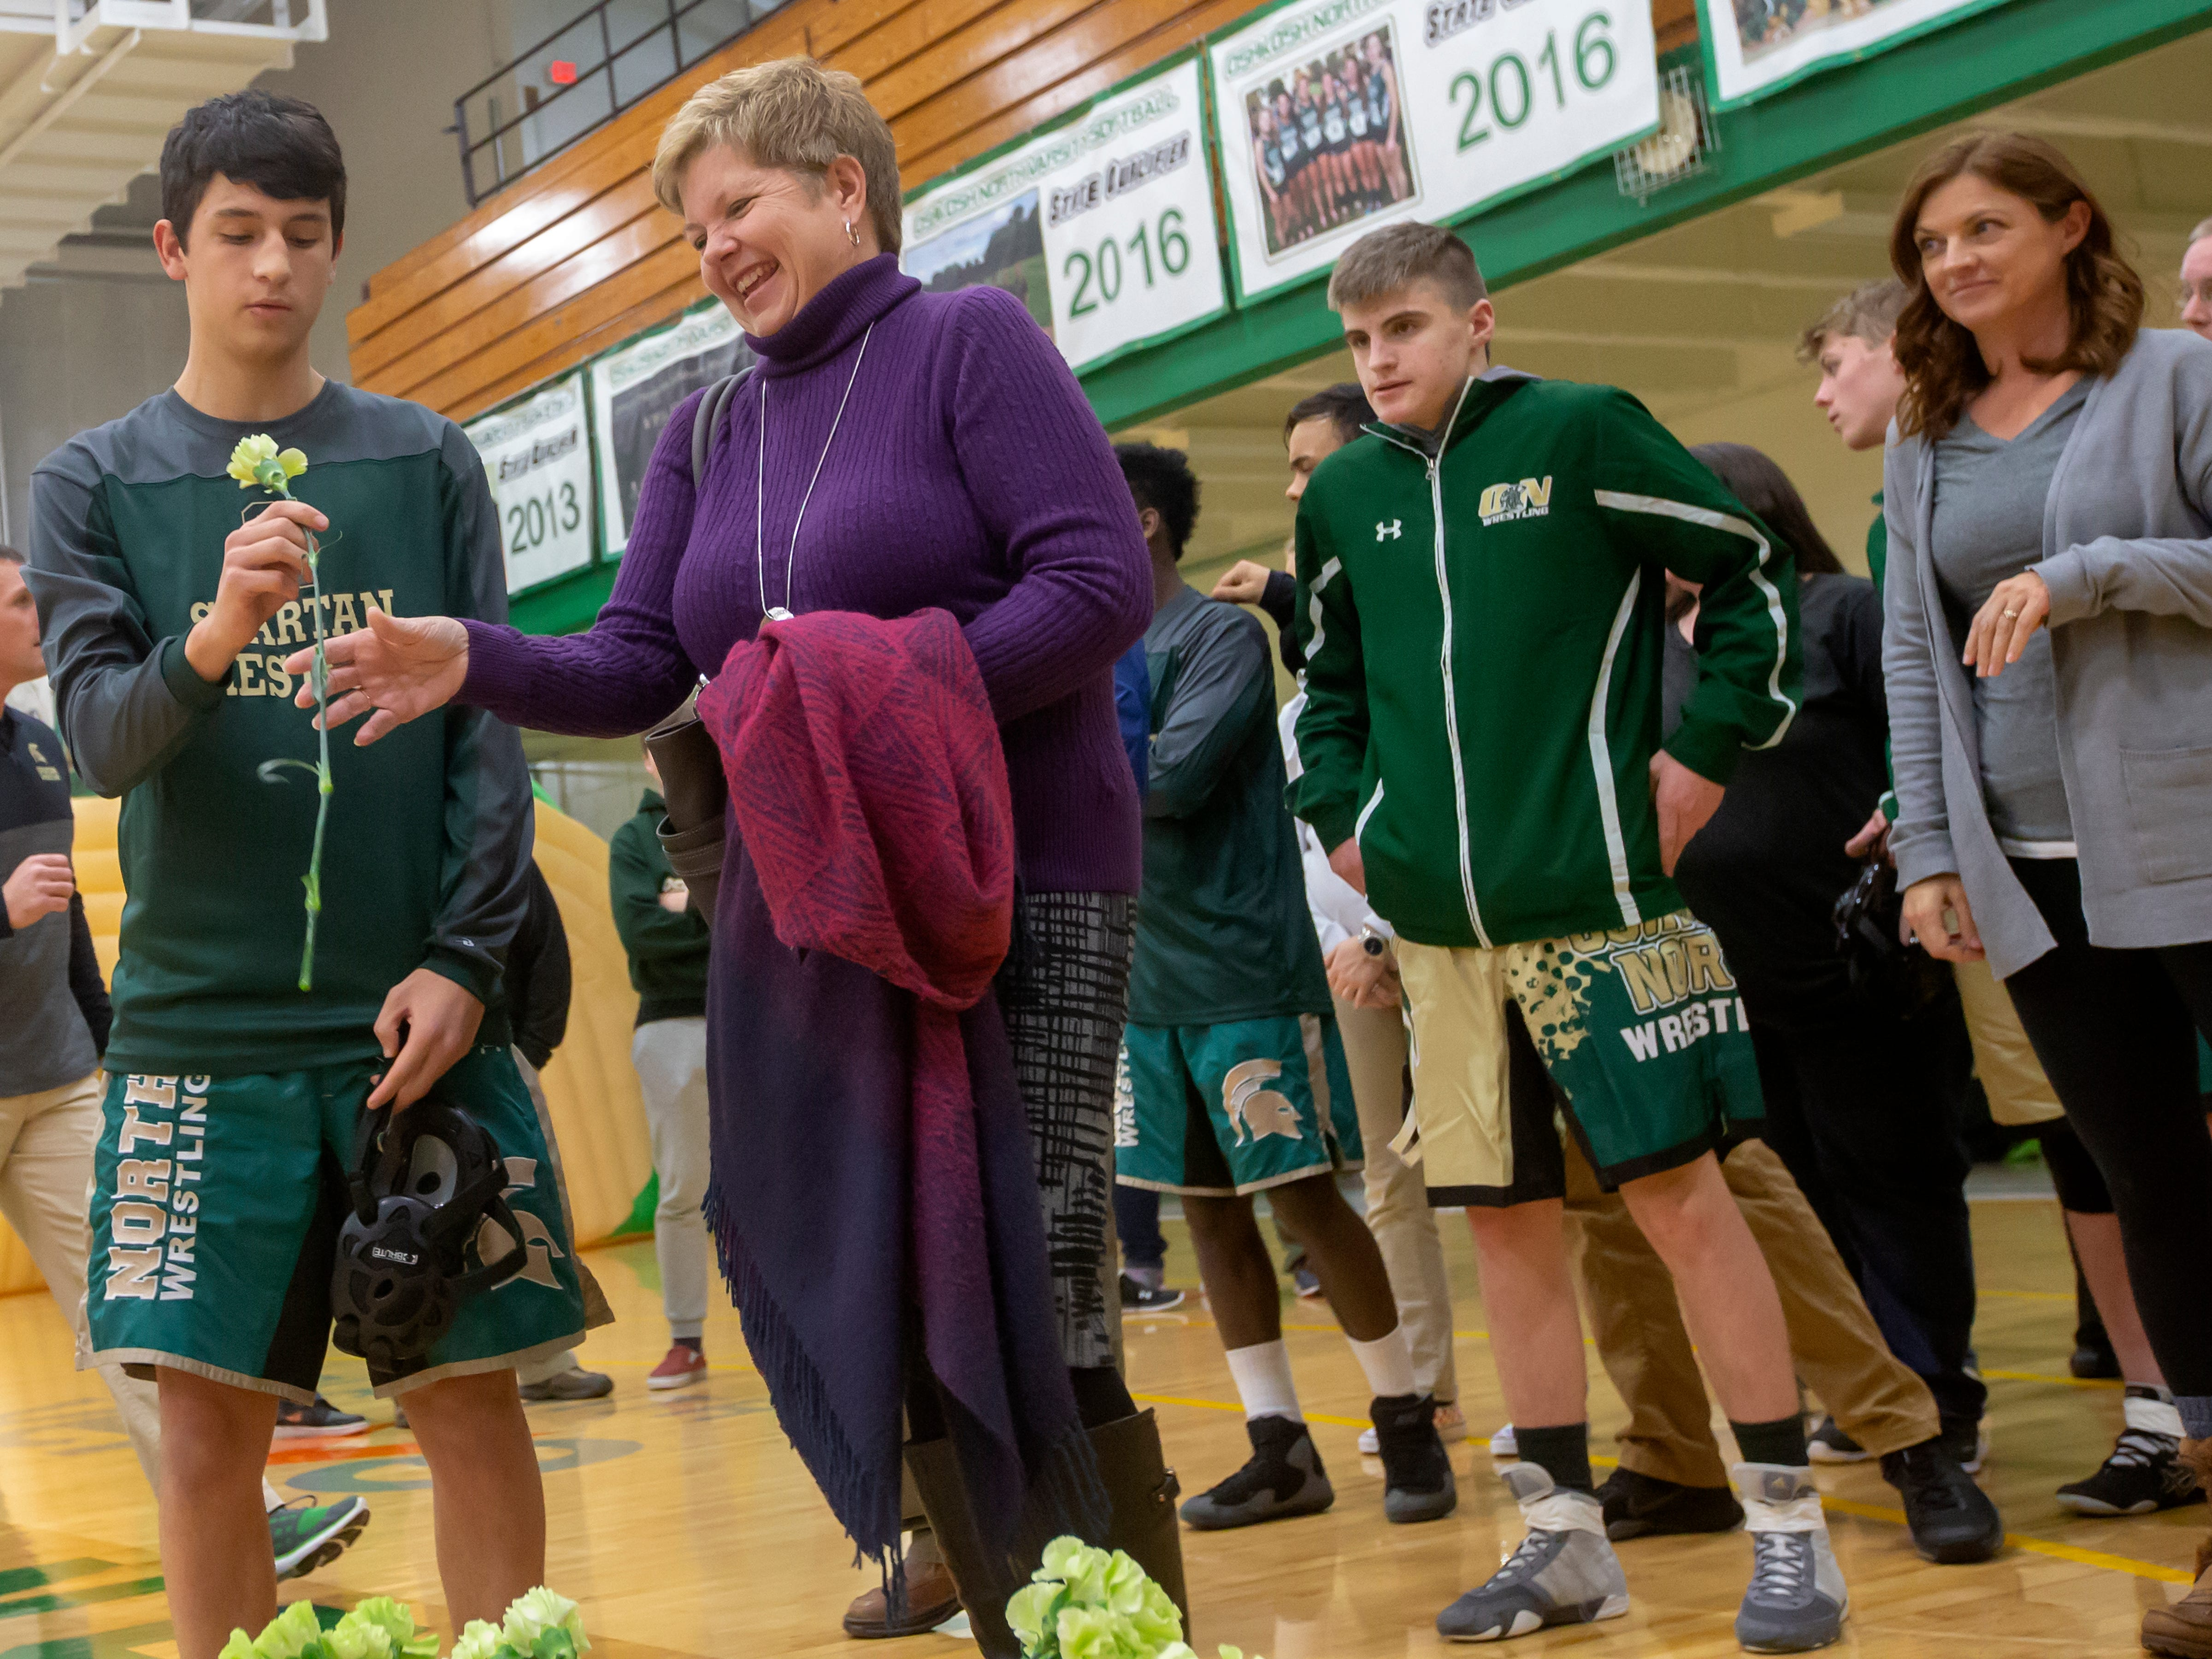 Oshkosh North's Jose Collins gives mom, Theresa Collins, a flower honoring parents during the Oshkosh North wrestling meet at the high school on Thursday, November 29, 2018.